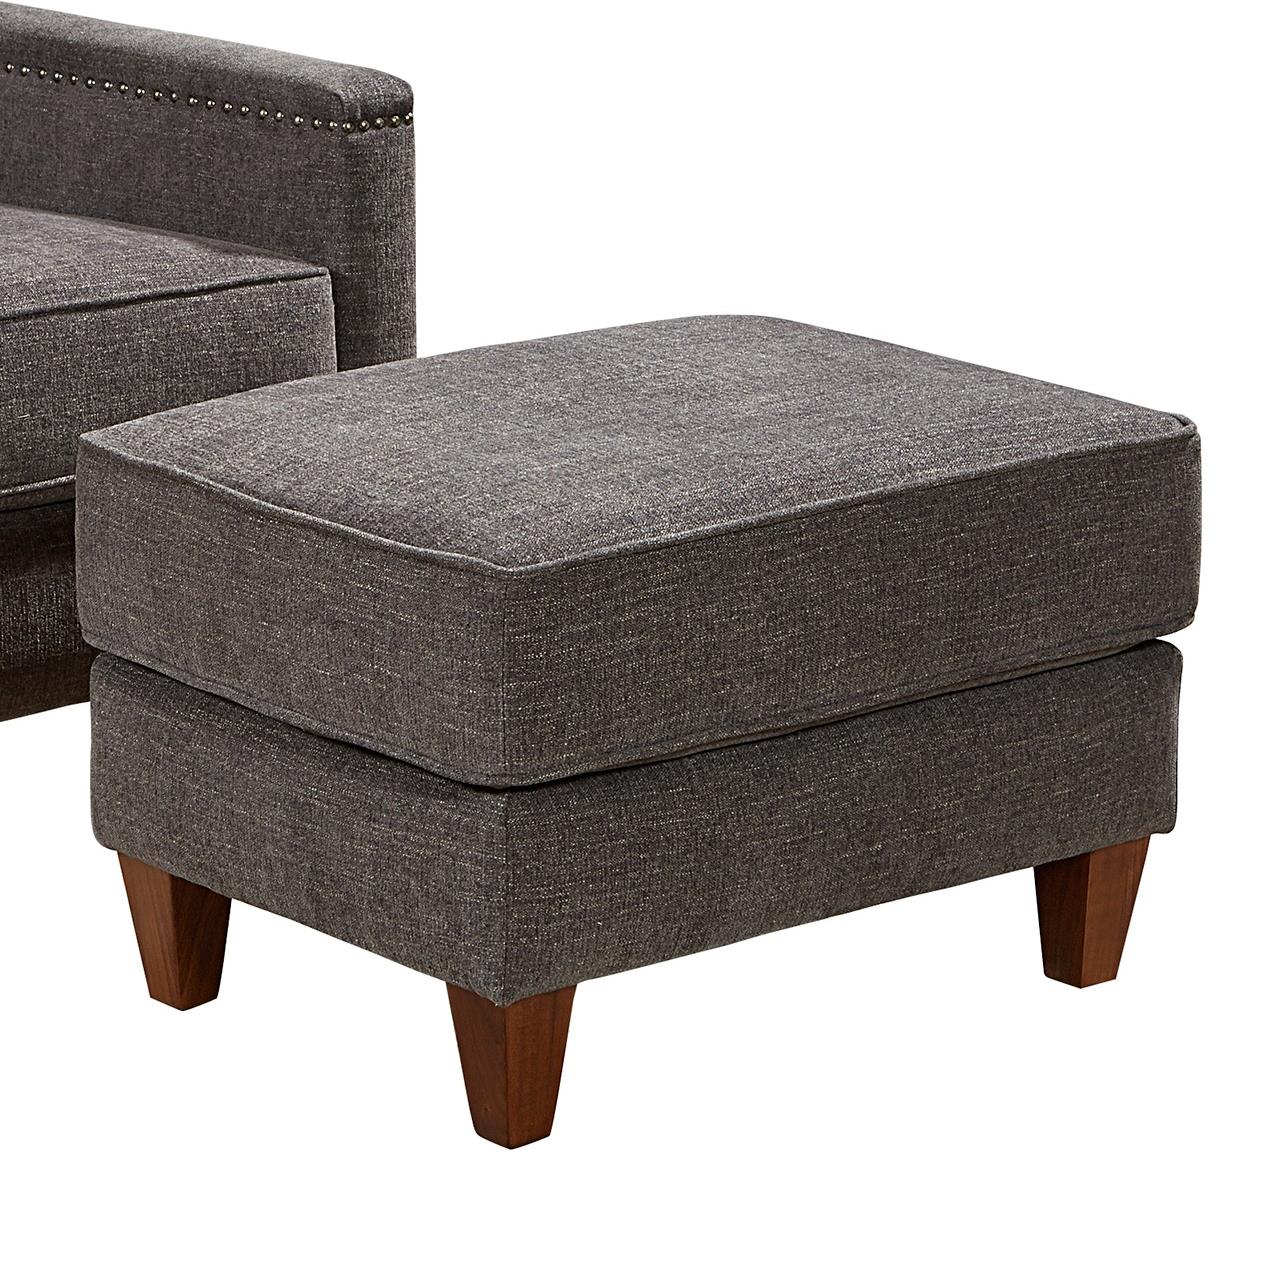 Broyhill Furniture Lawson Ottoman - Item Number: 4254-5-4202-97